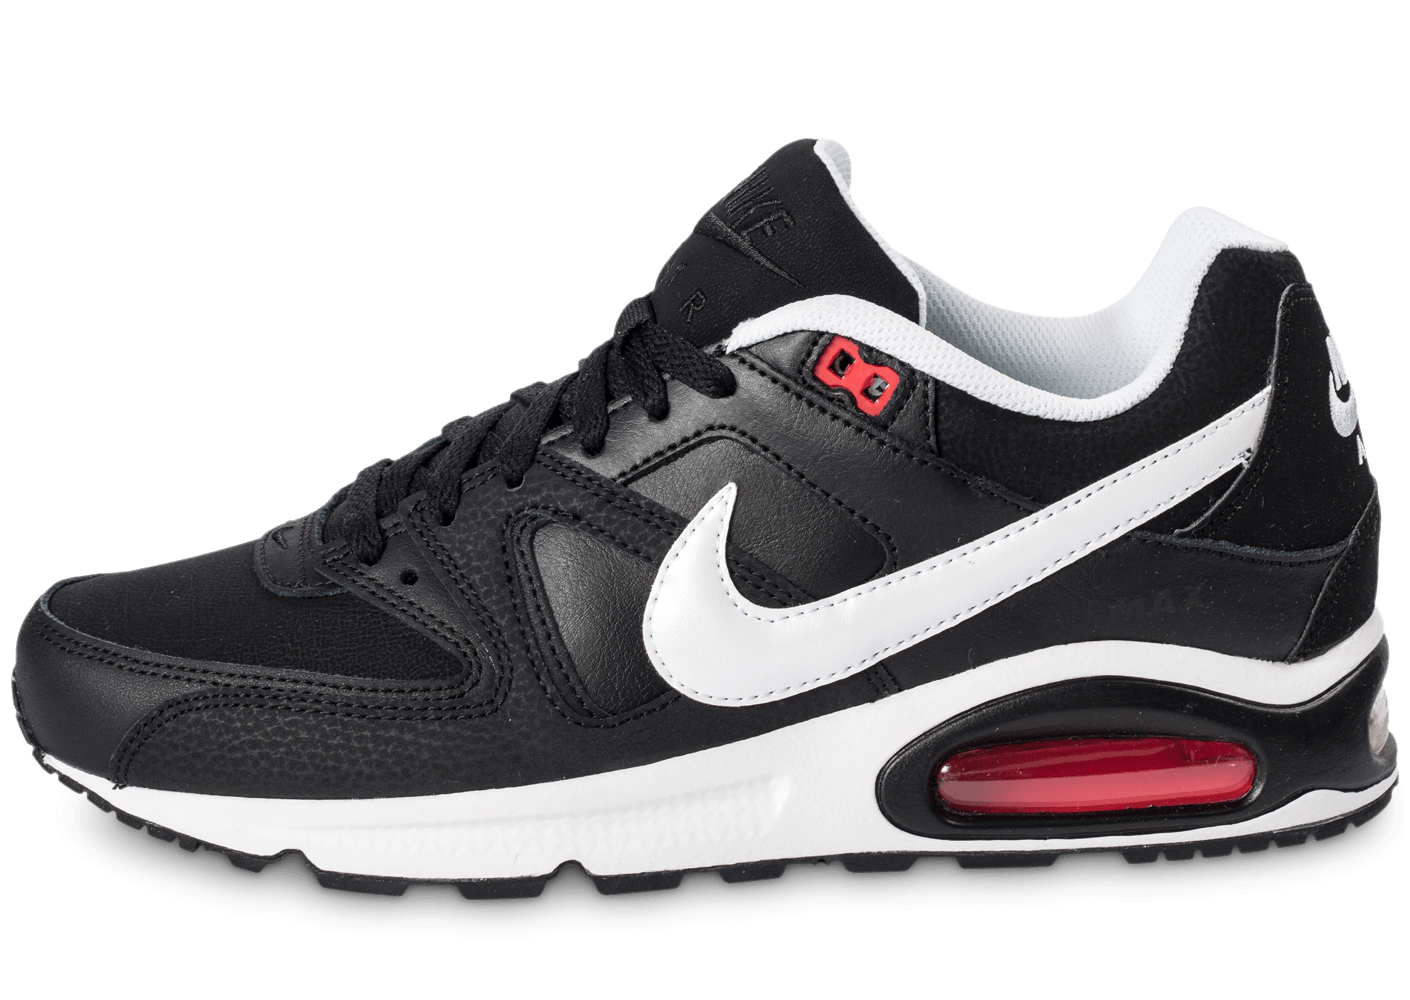 nike air max command noire et blanche chaussures homme. Black Bedroom Furniture Sets. Home Design Ideas